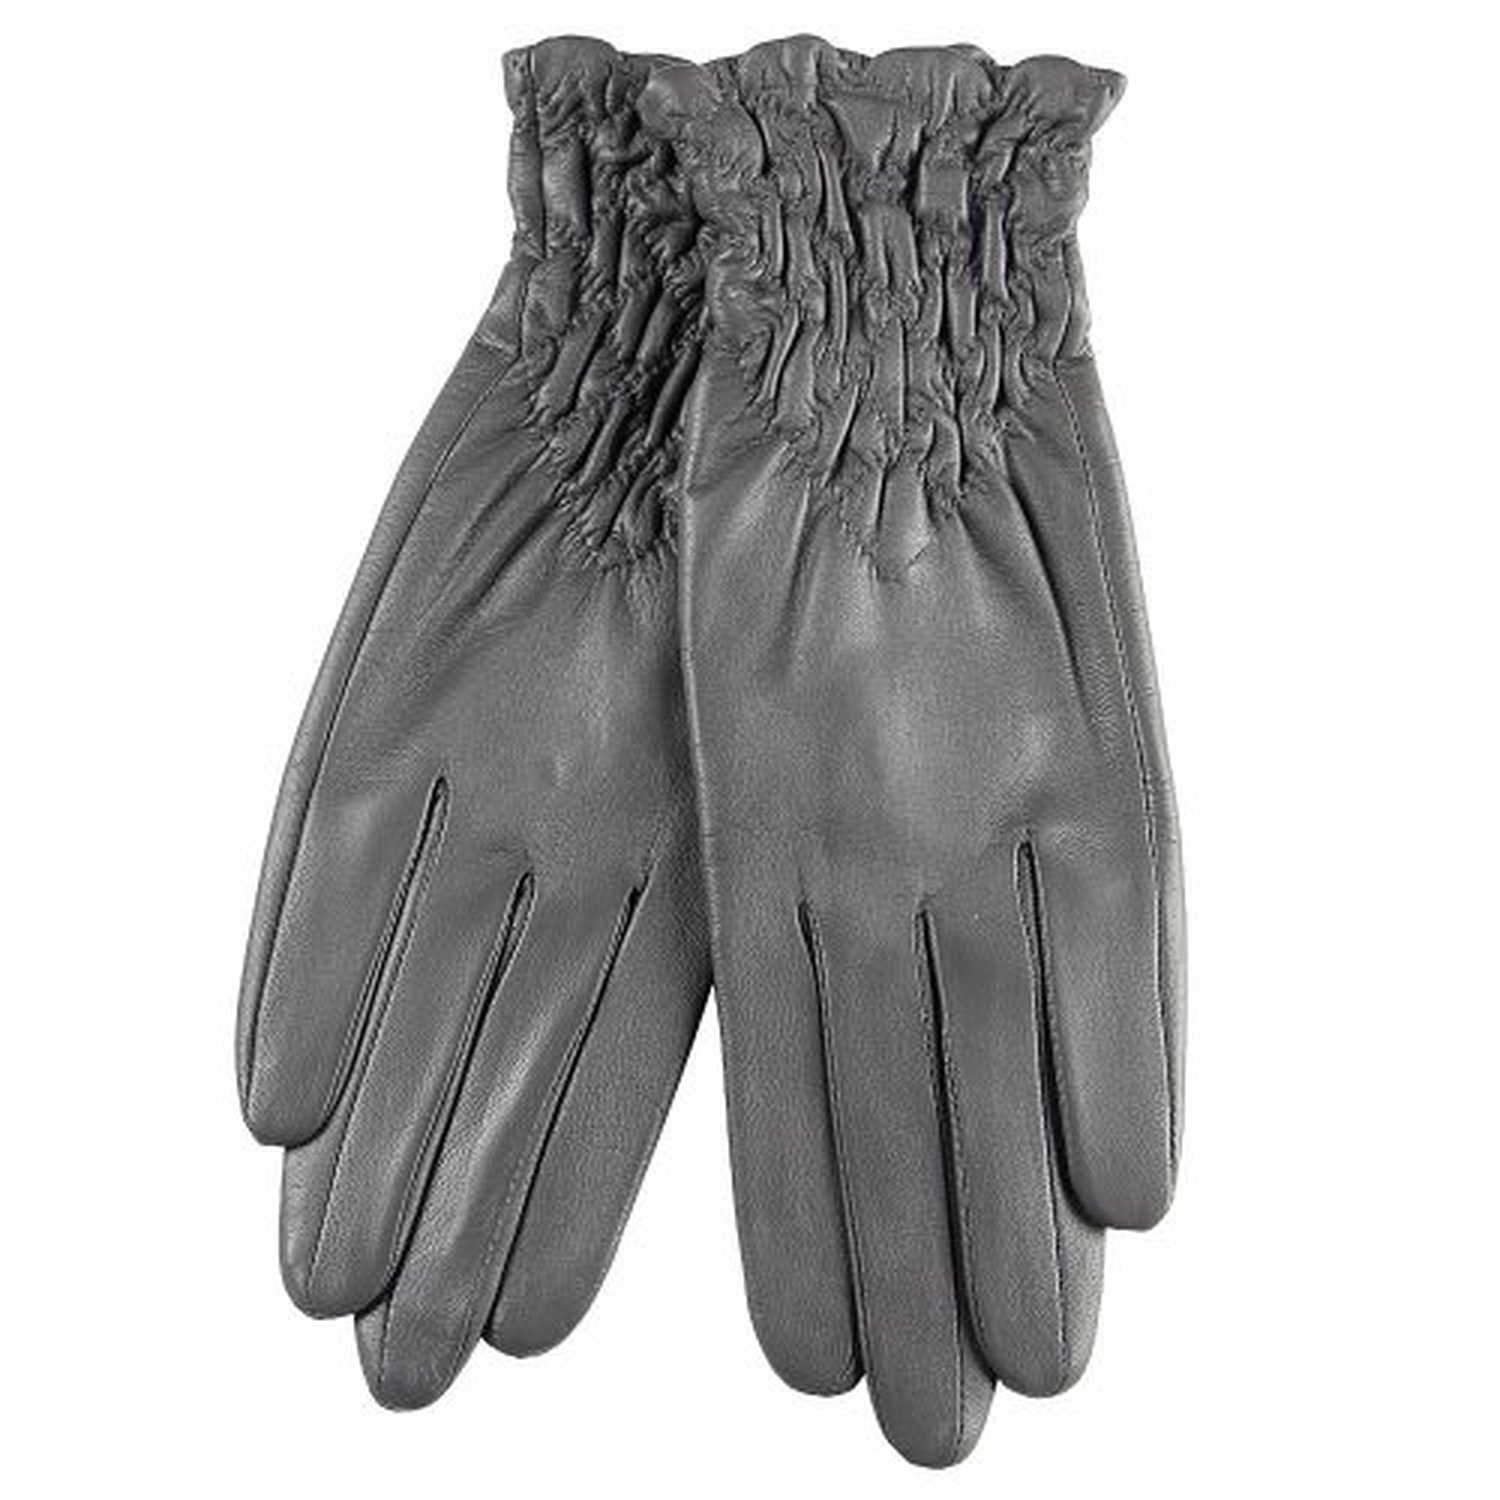 2015 New Medival Gothic Genuine Leather Ruched Wrist Length Short Gloves